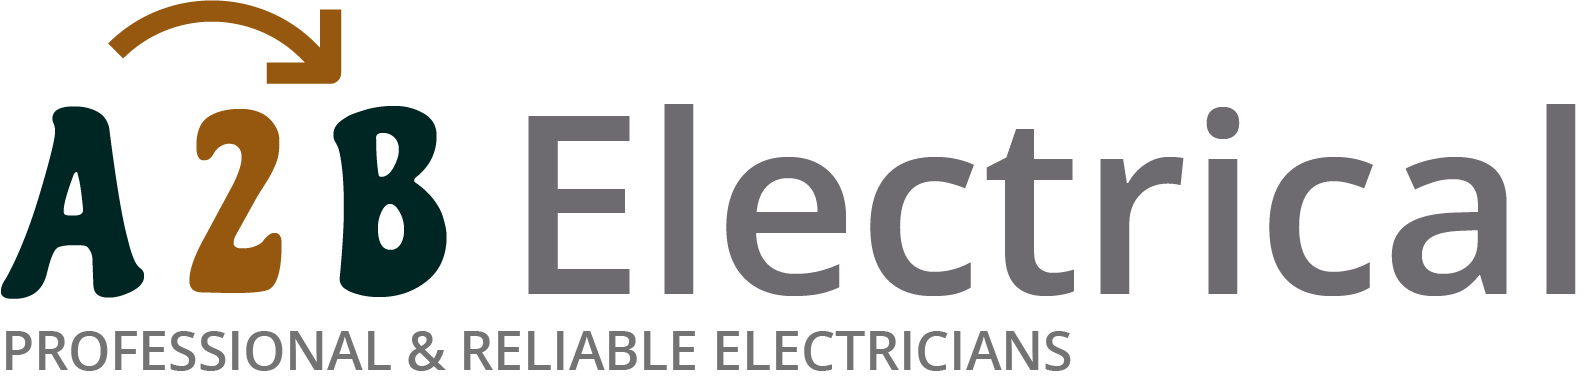 If you have electrical wiring problems in South Lambeth, we can provide an electrician to have a look for you.